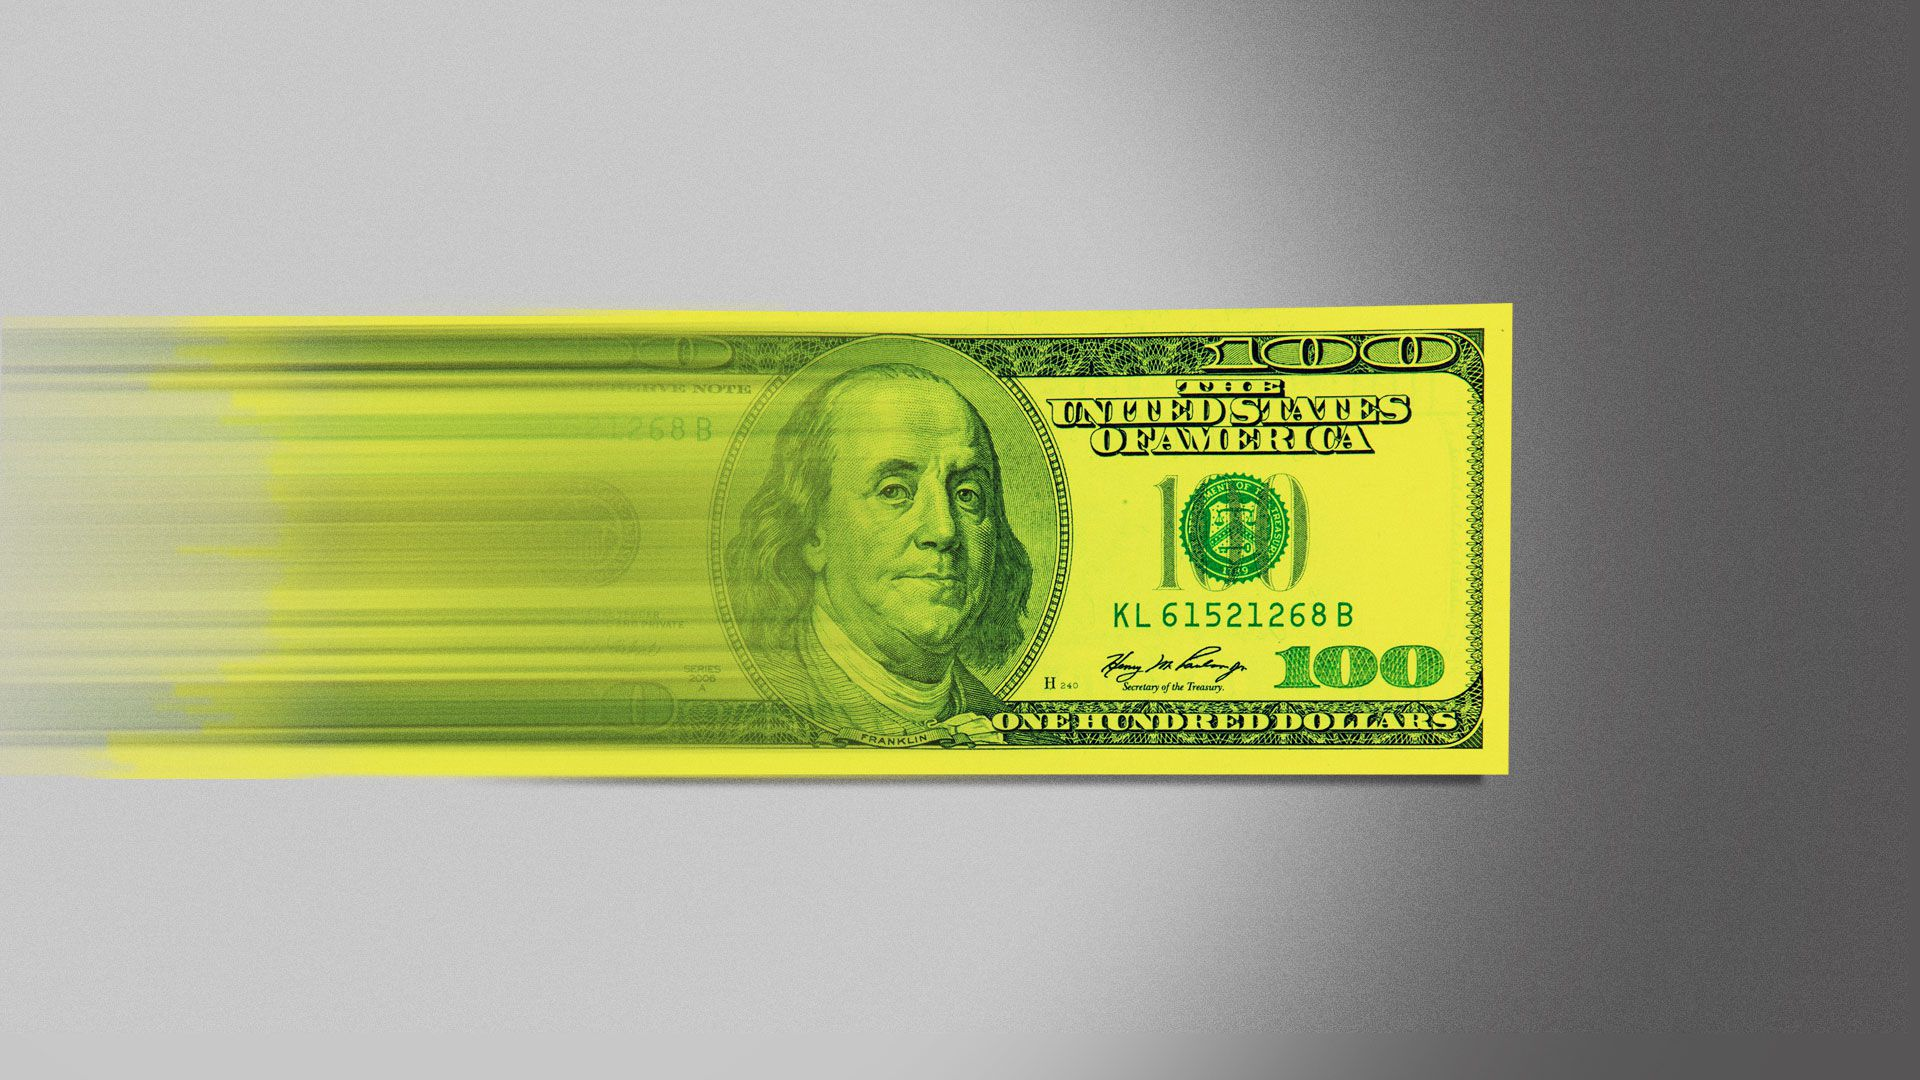 Illustration of a $100 bill accelerating to warp speed